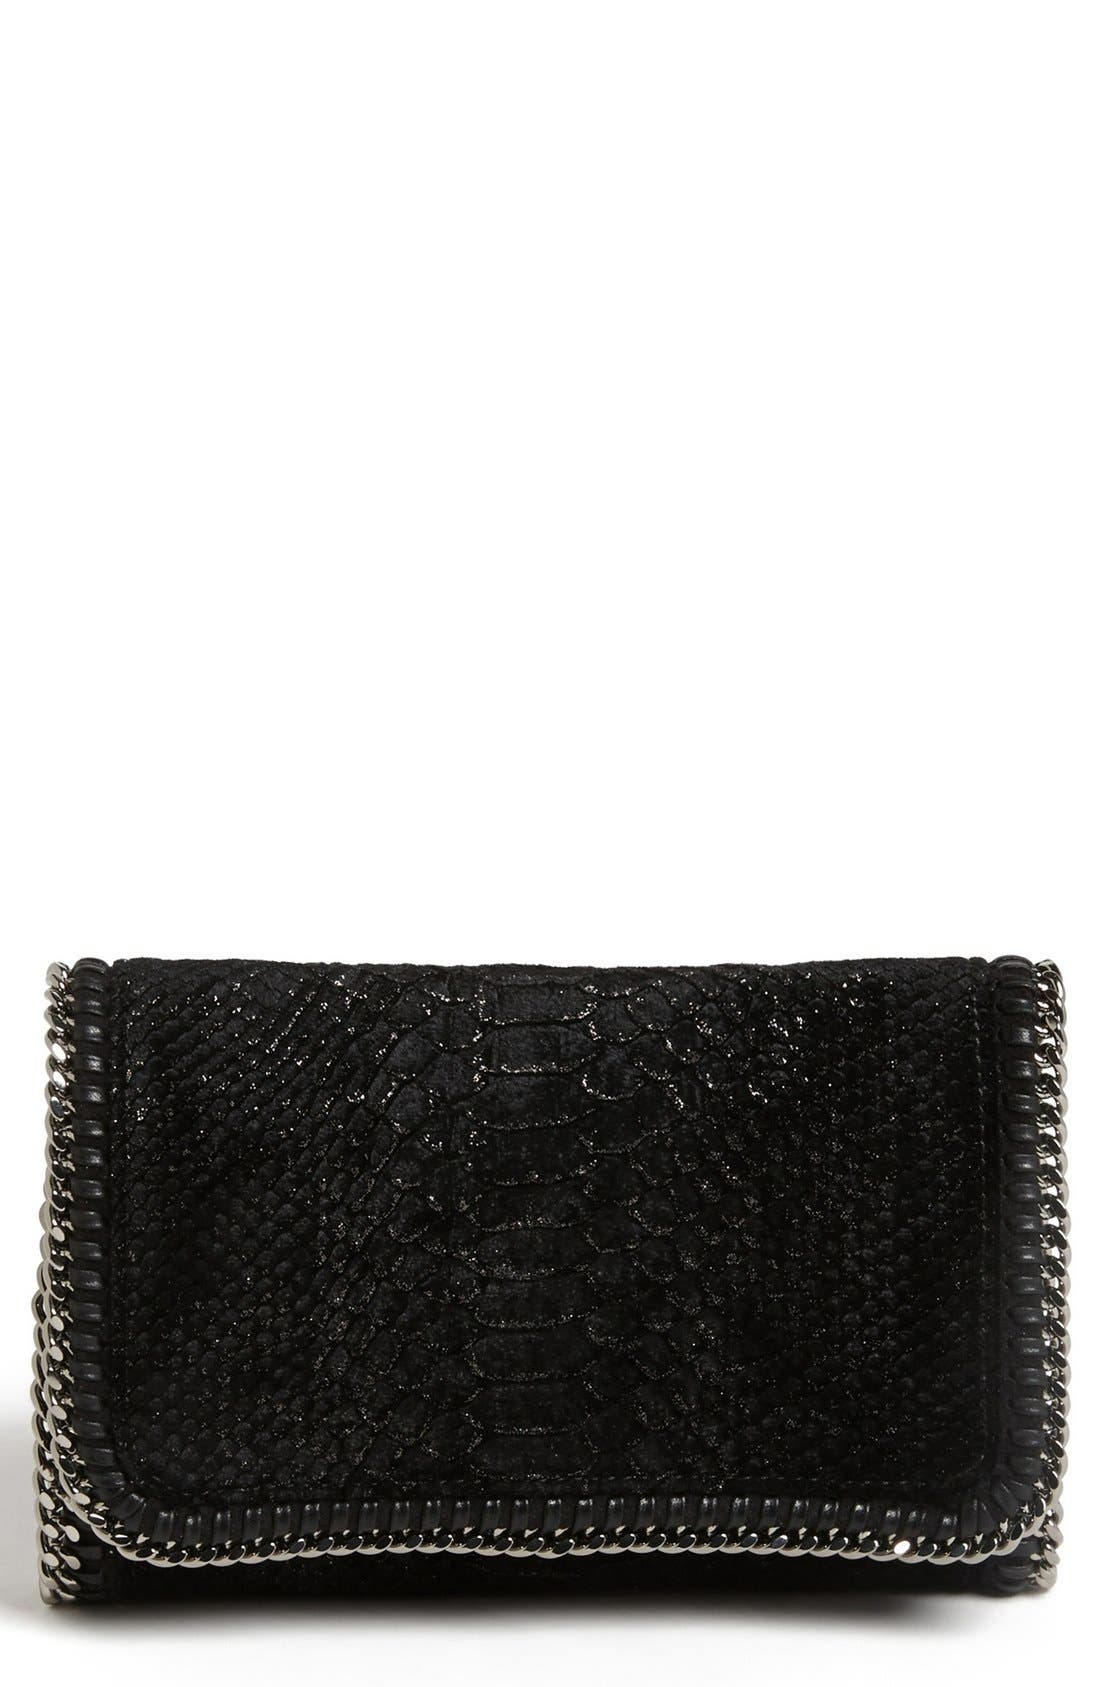 Alternate Image 1 Selected - Stella McCartney 'Falabella' Velvet Crossbody Clutch